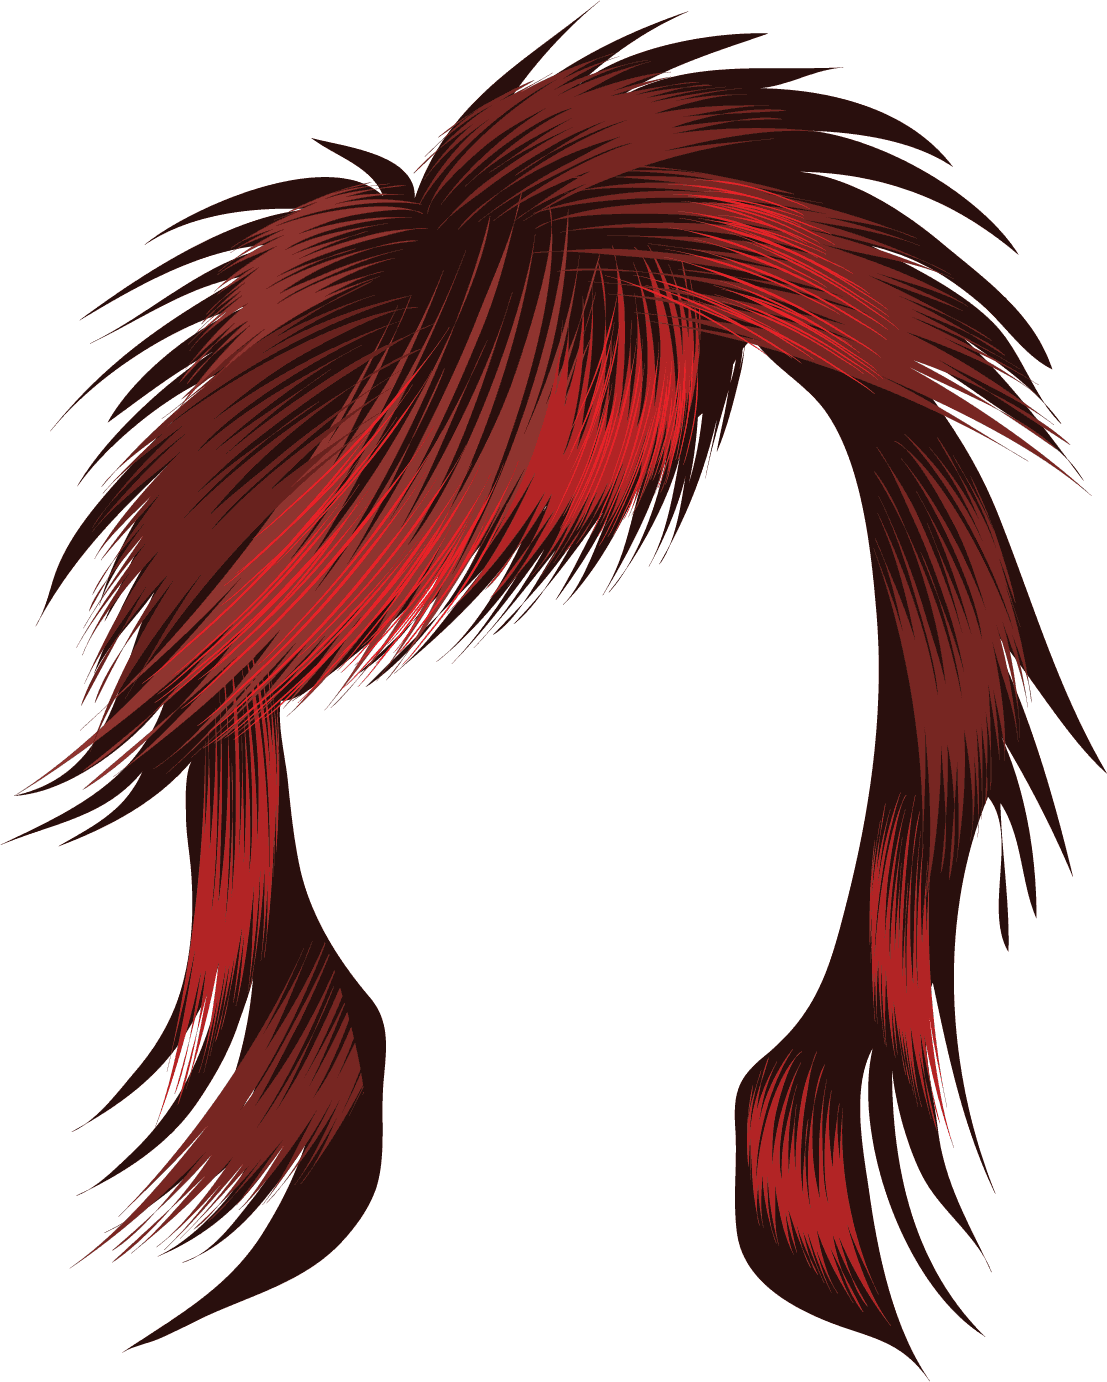 Cartoon hair clipart freeuse library Clipart hair clipart 3 - Cliparting.com freeuse library